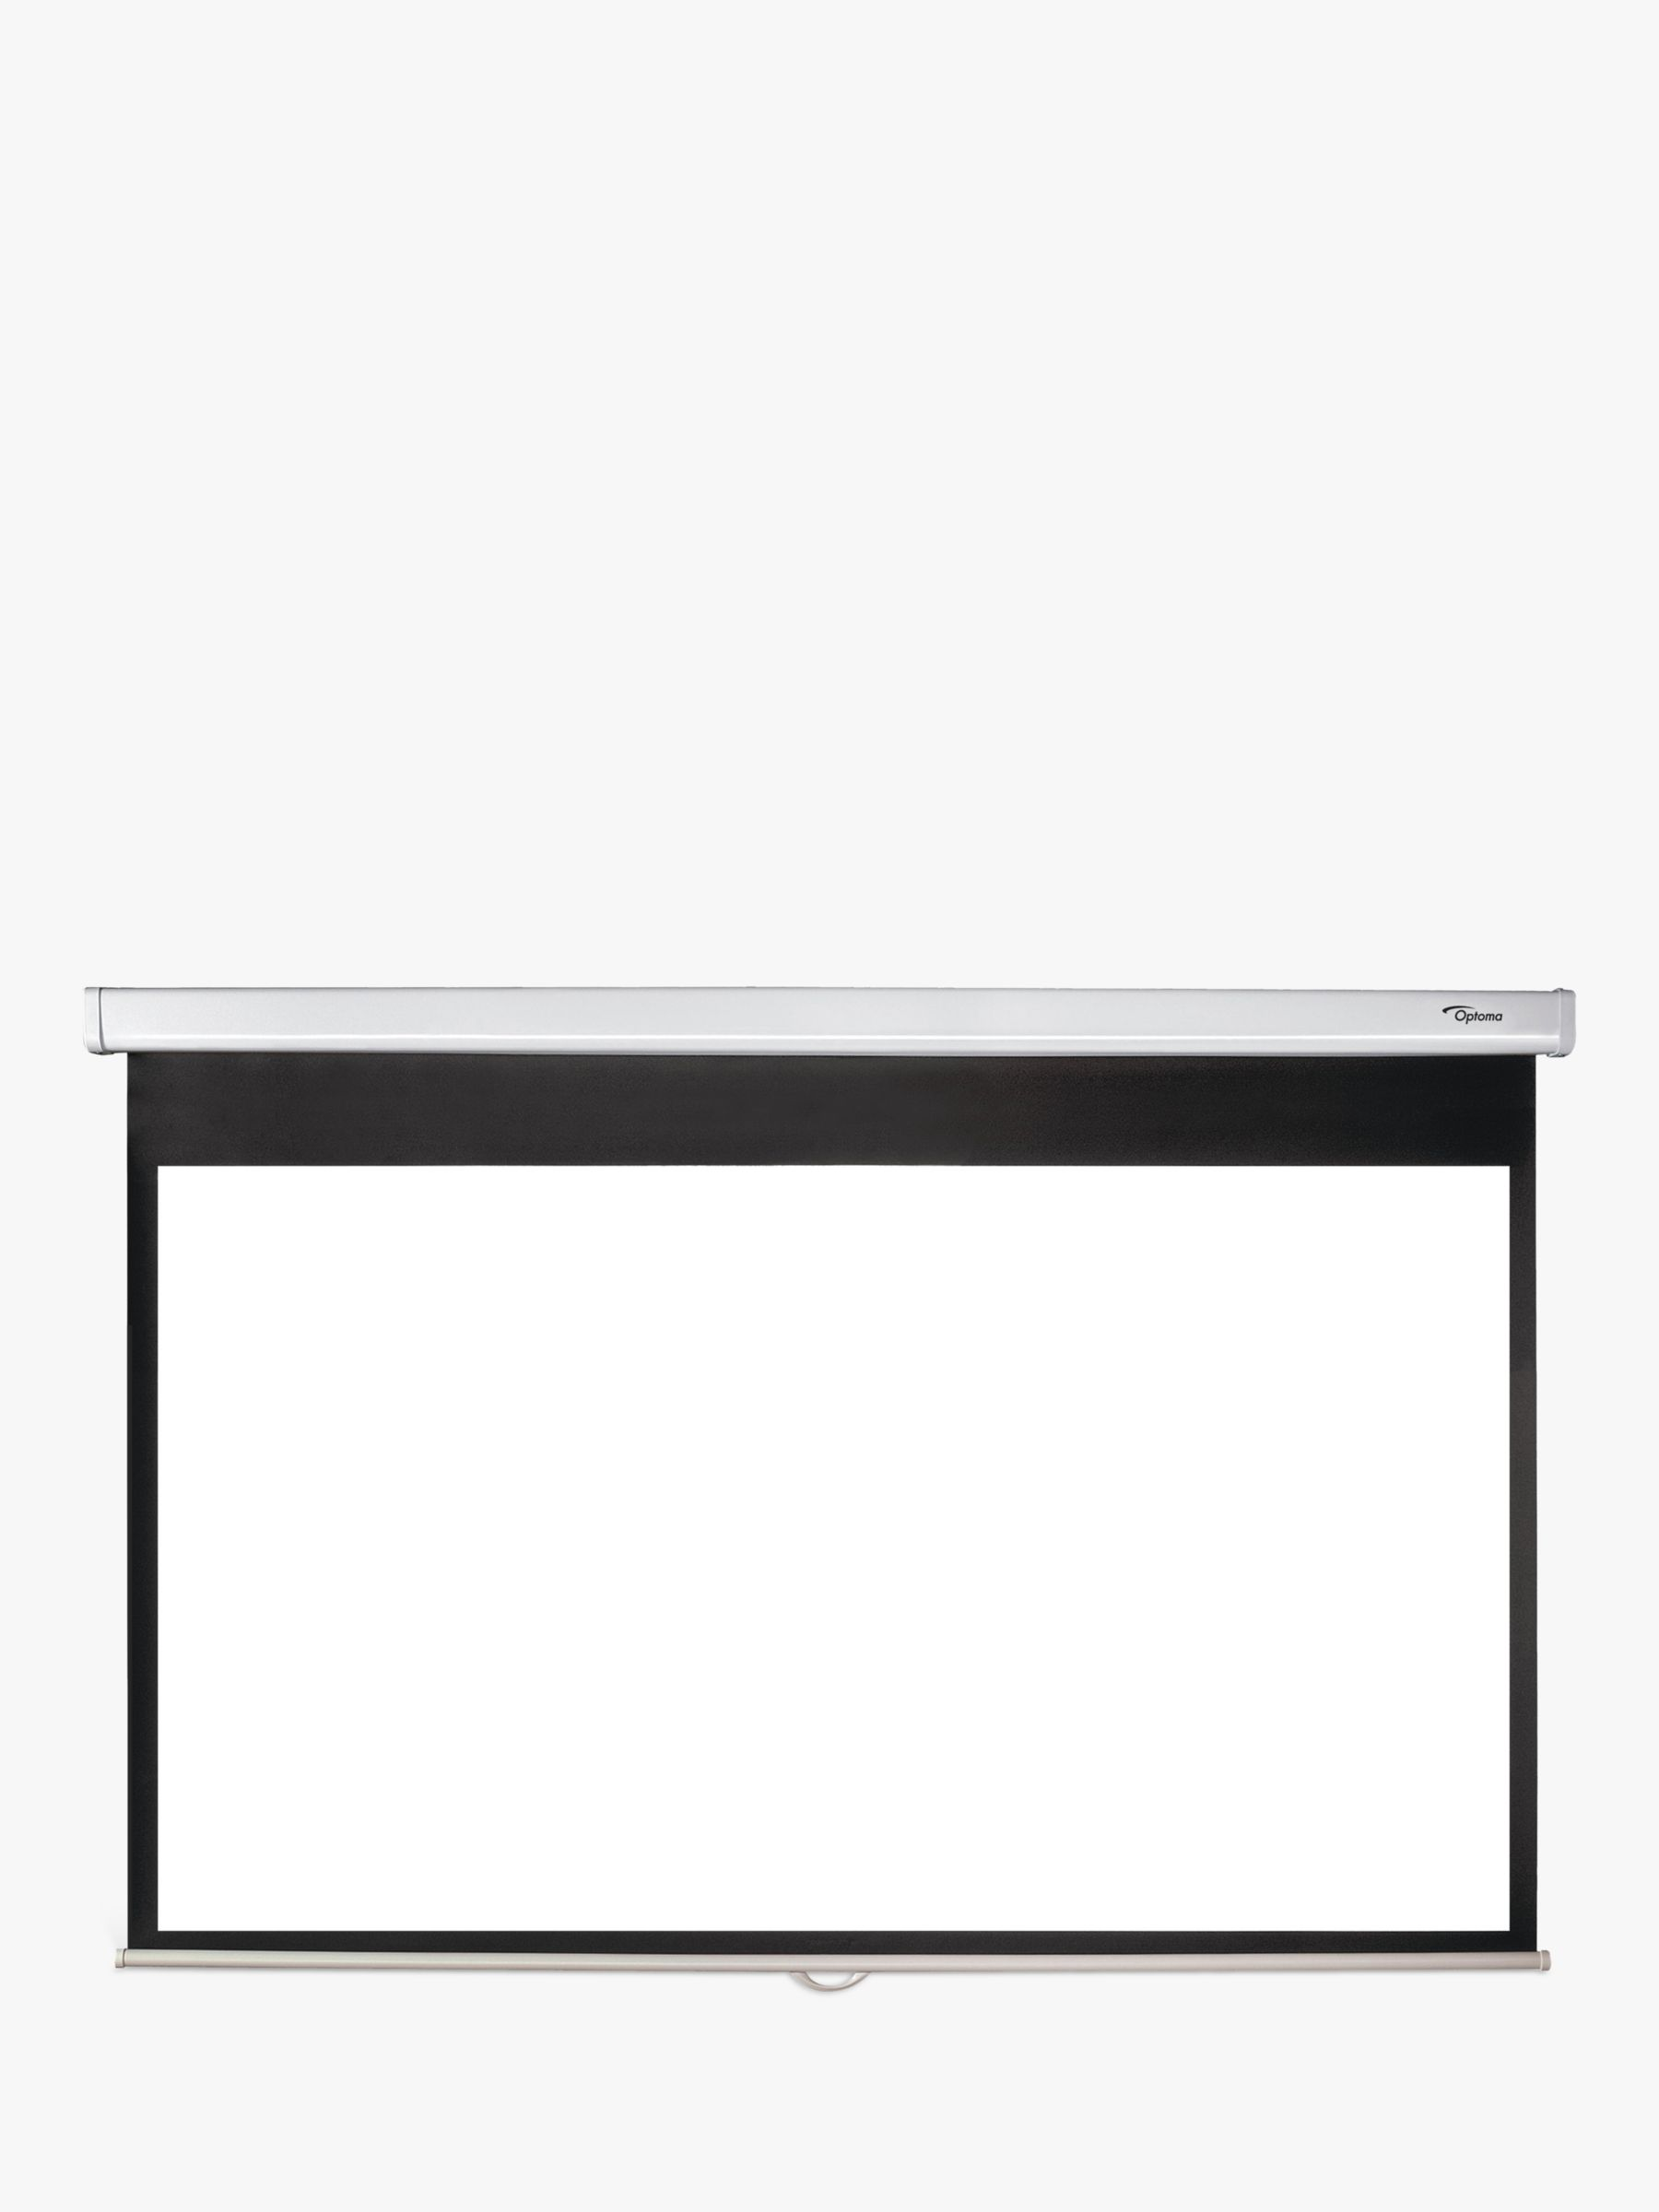 Optoma Pull Down Projector Screen